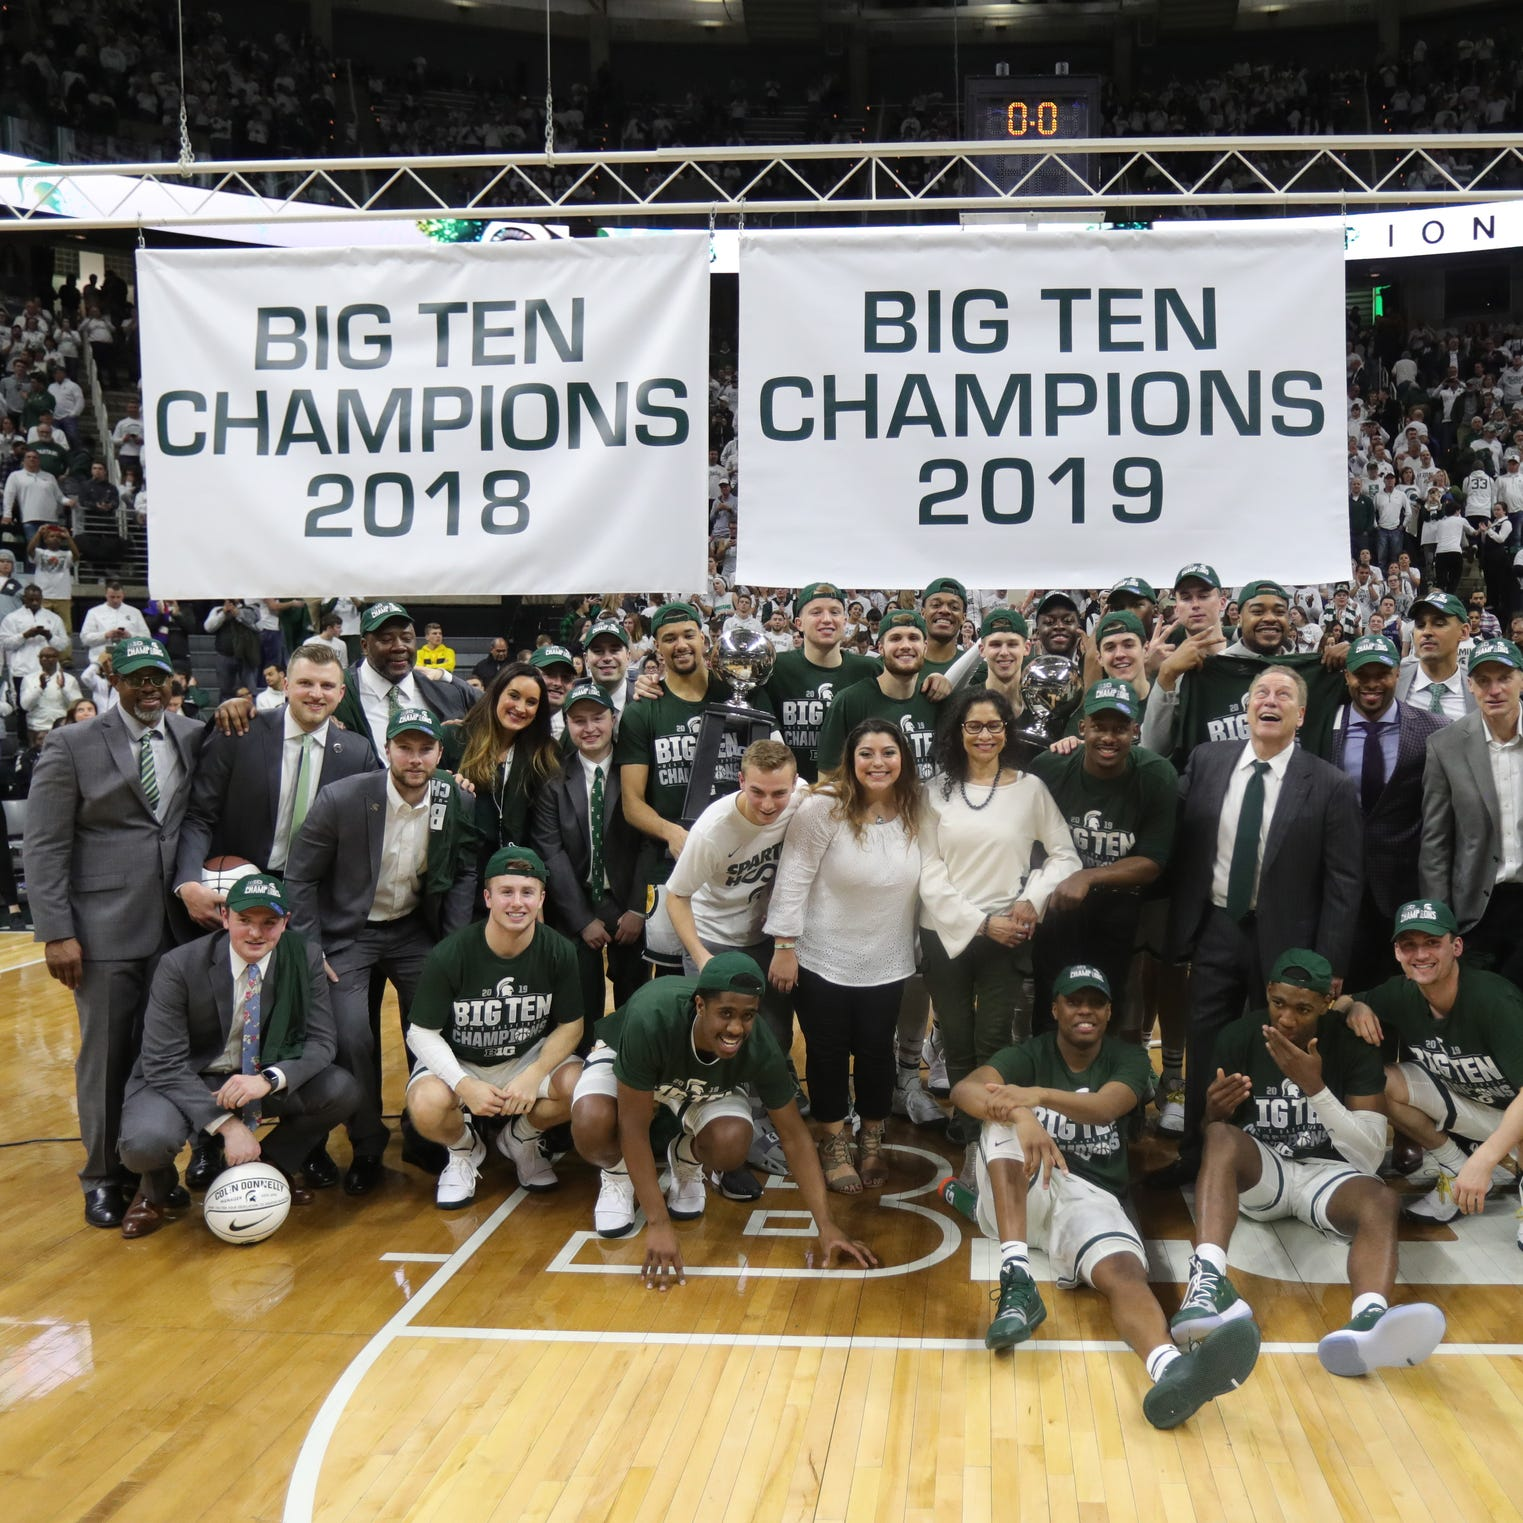 Michigan State winning Big Ten tournament could lead to No. 1 seed